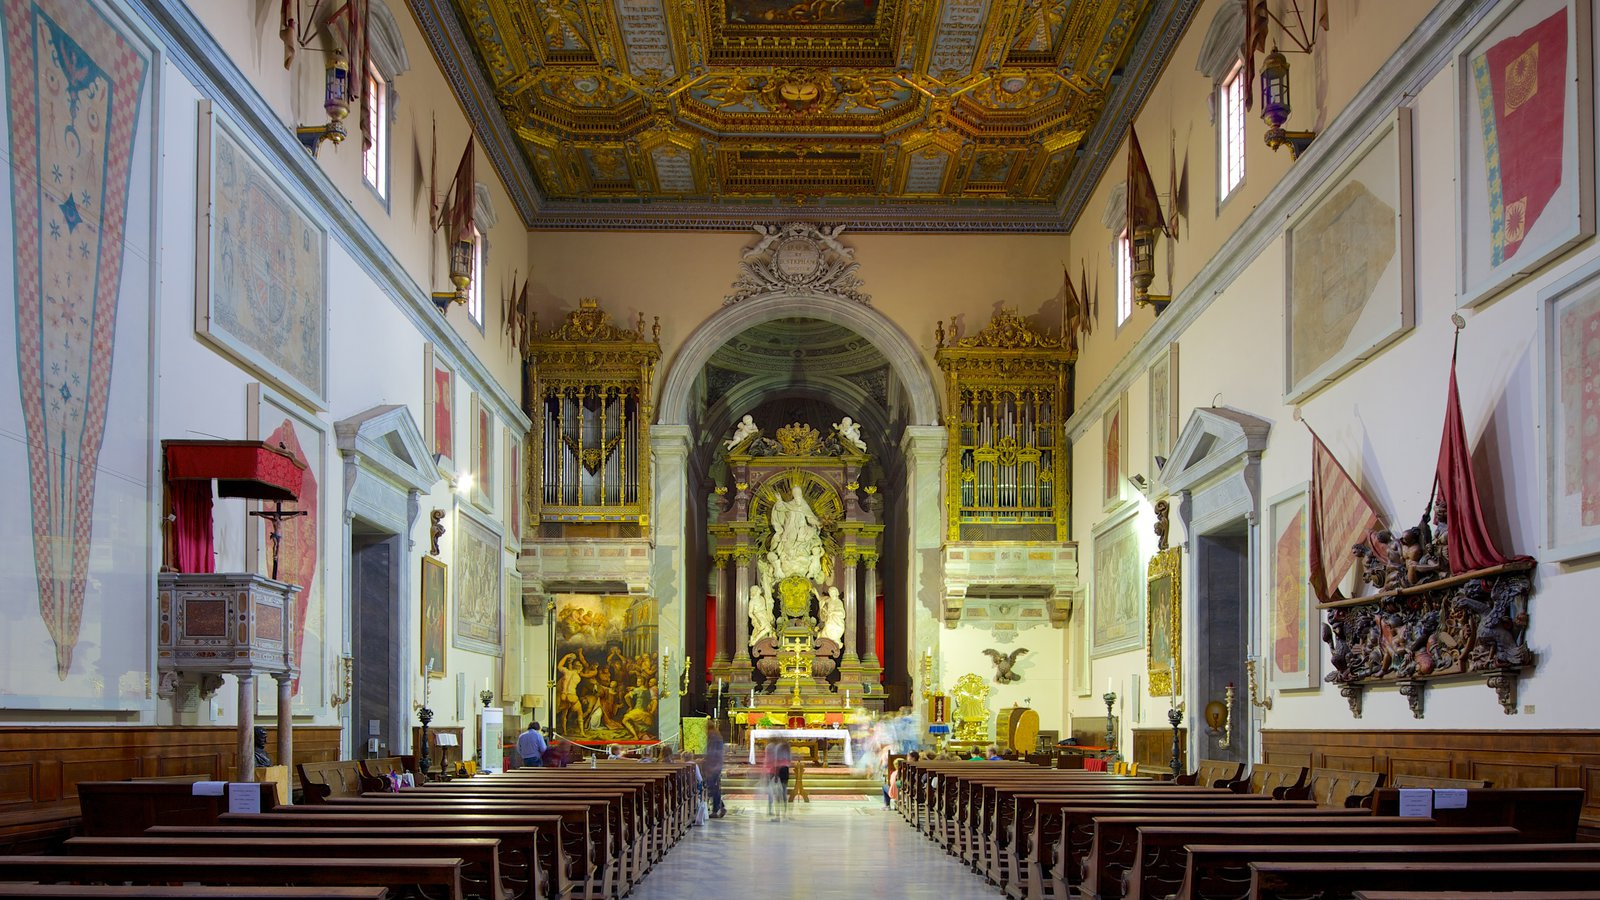 Santo Stefano dei Cavalieri showing religious elements, a church or cathedral and interior views